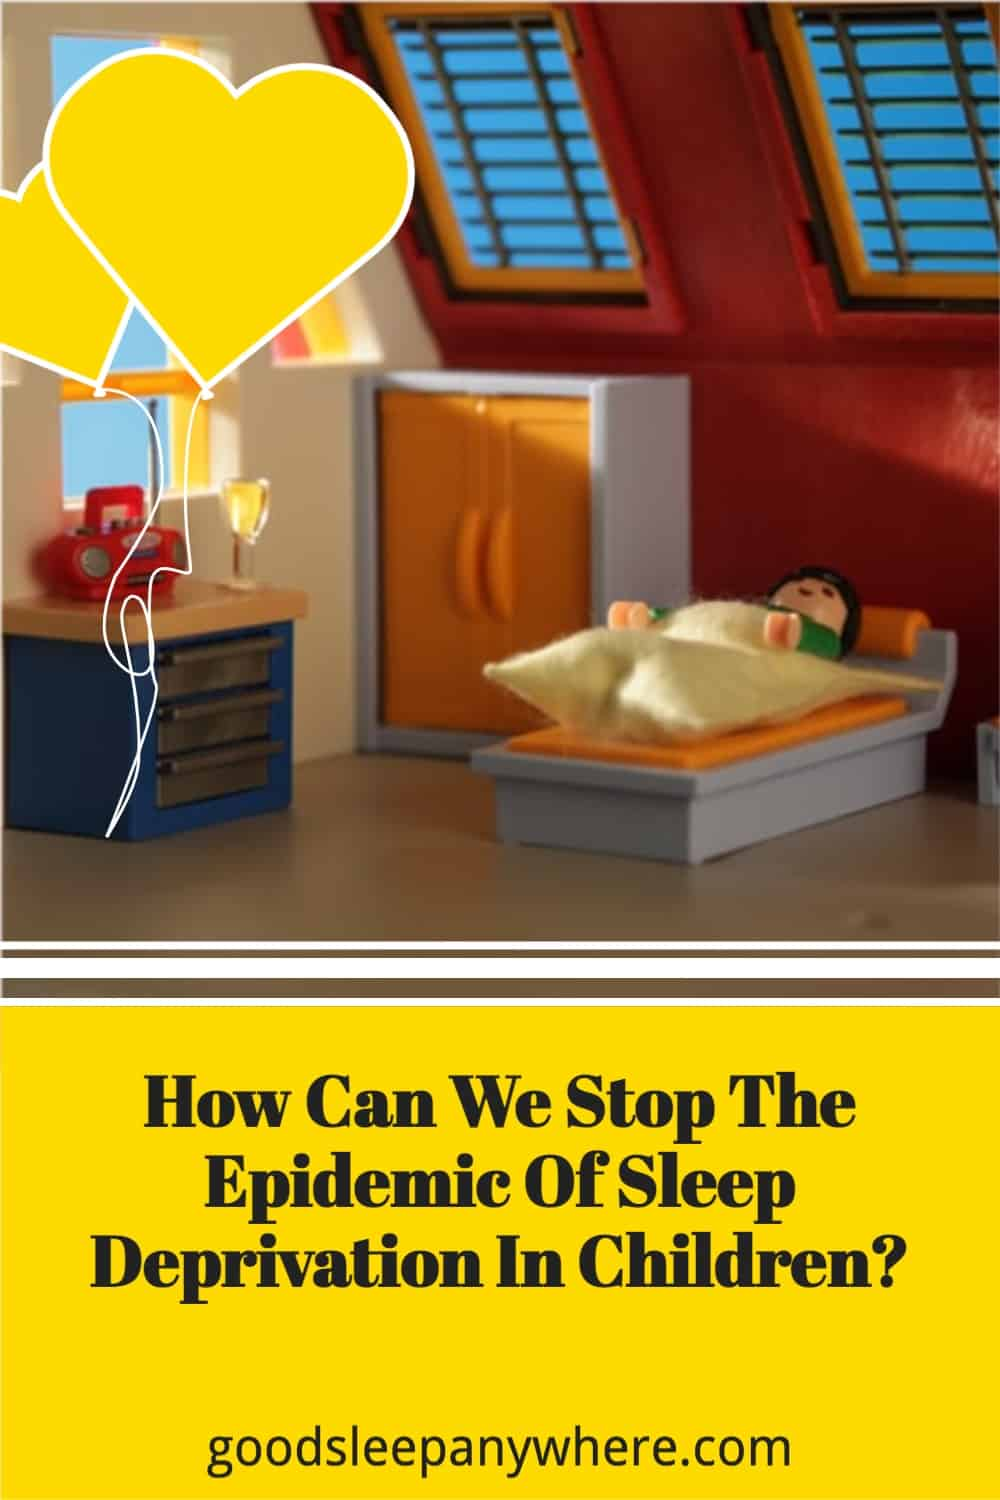 How-Can-We-Stop-The-Epidemic-Of-Sleep-Deprivation-In-Children_